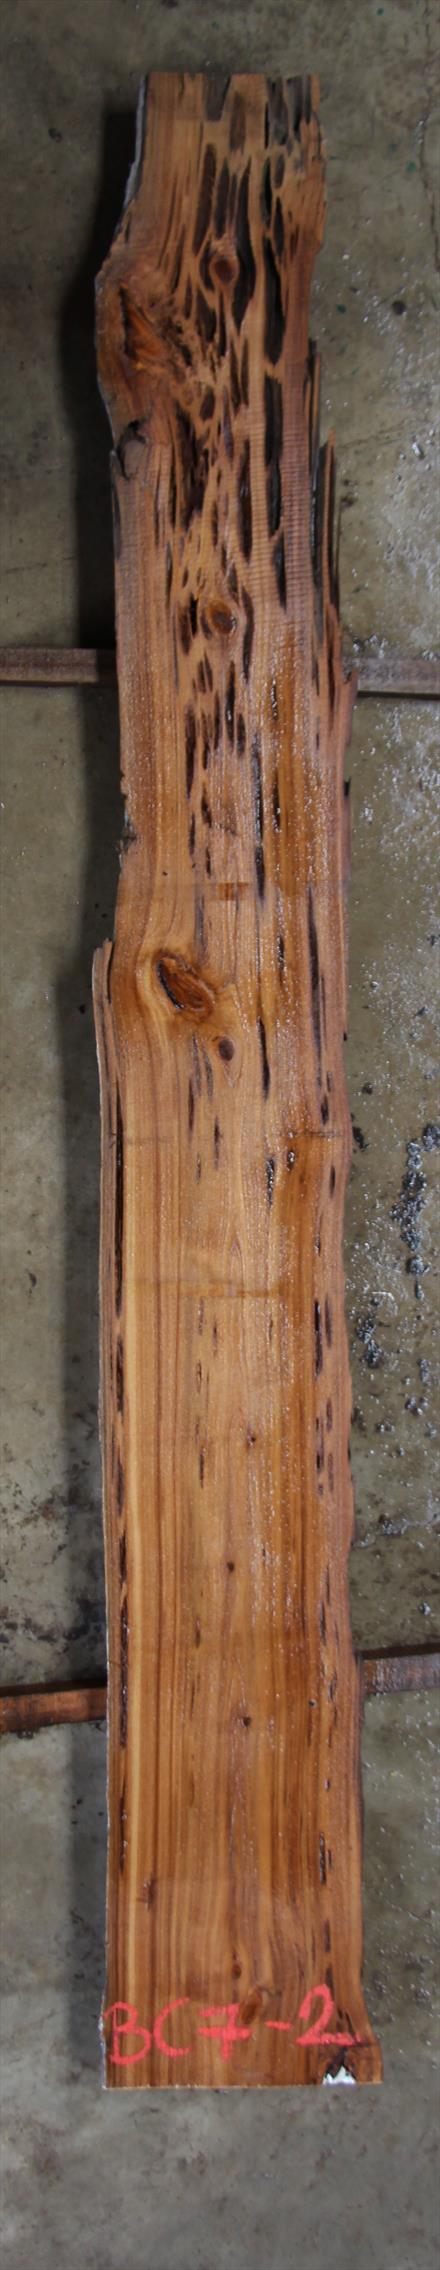 Buried Cypress Slab BC007-02